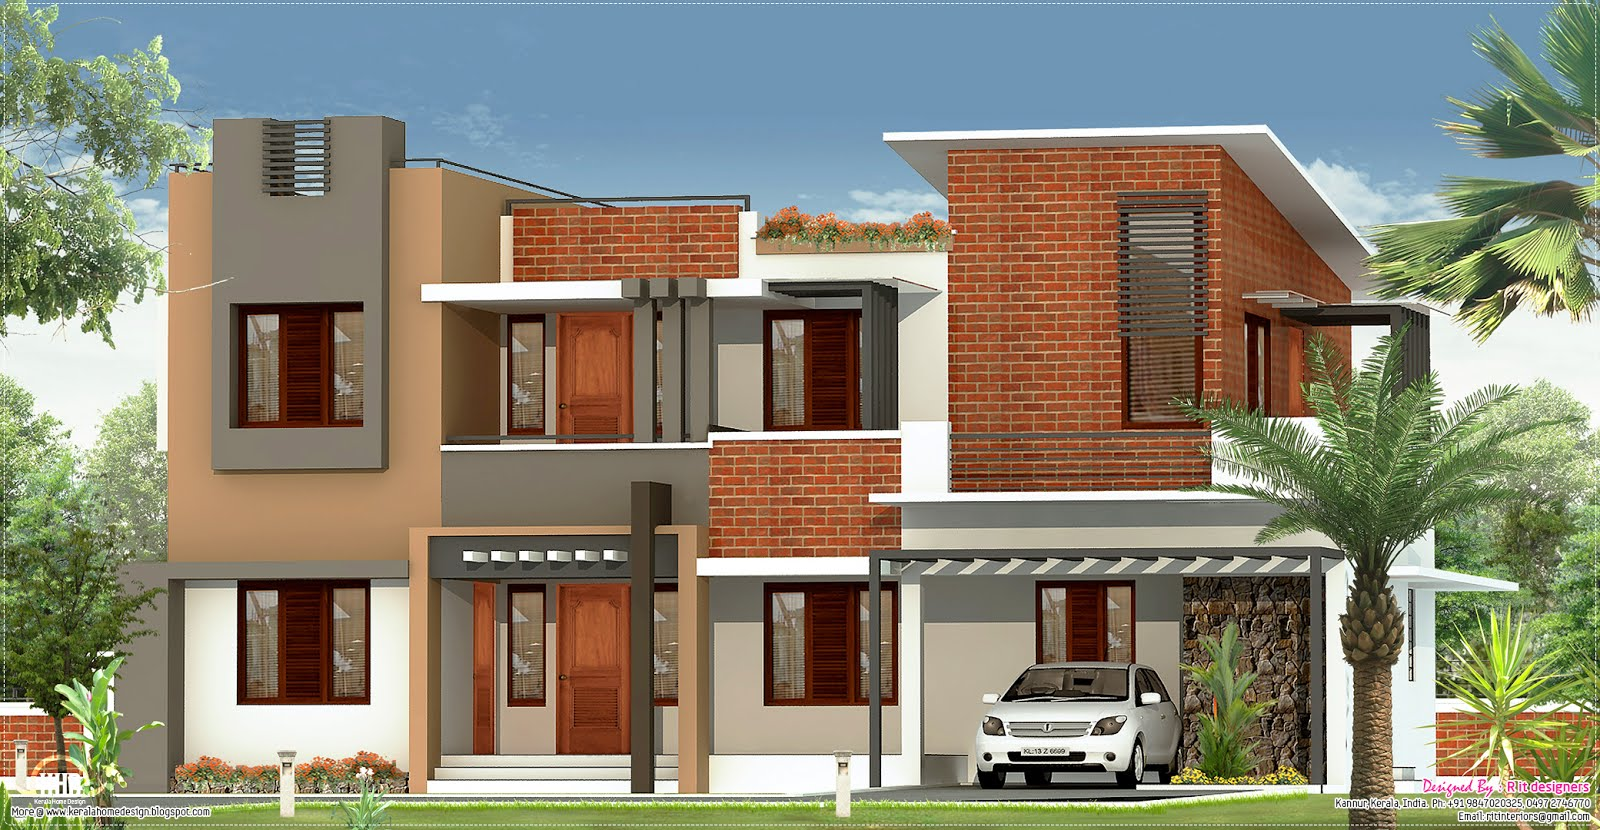 Front Elevation Pergola Design : Sq feet flat roof villa kerala home design and